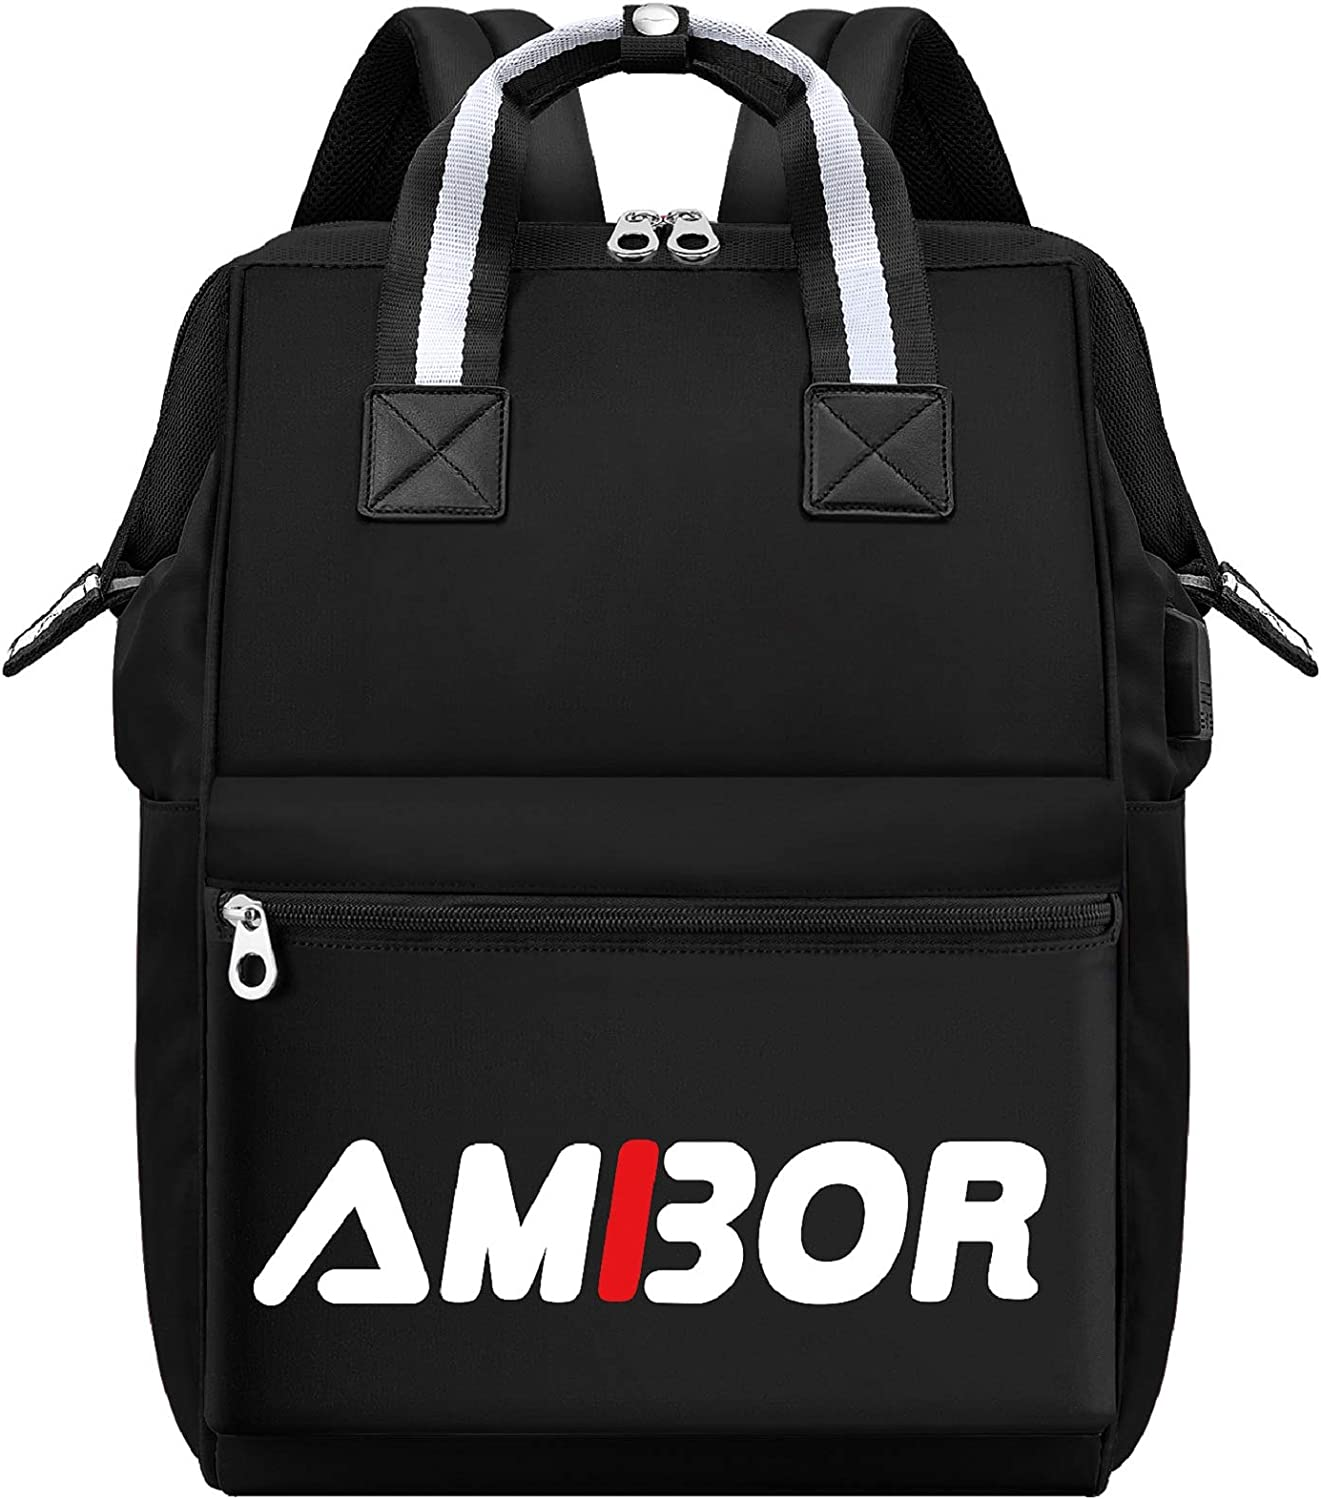 Travel Laptop Backpack, AMBOR 15.6 Inch Stylish College School Computer Backpack with USB Charging Port for Women Men, Water Resistant Business Laptop Backpack Casual Daypack Laptop Bag Tablet